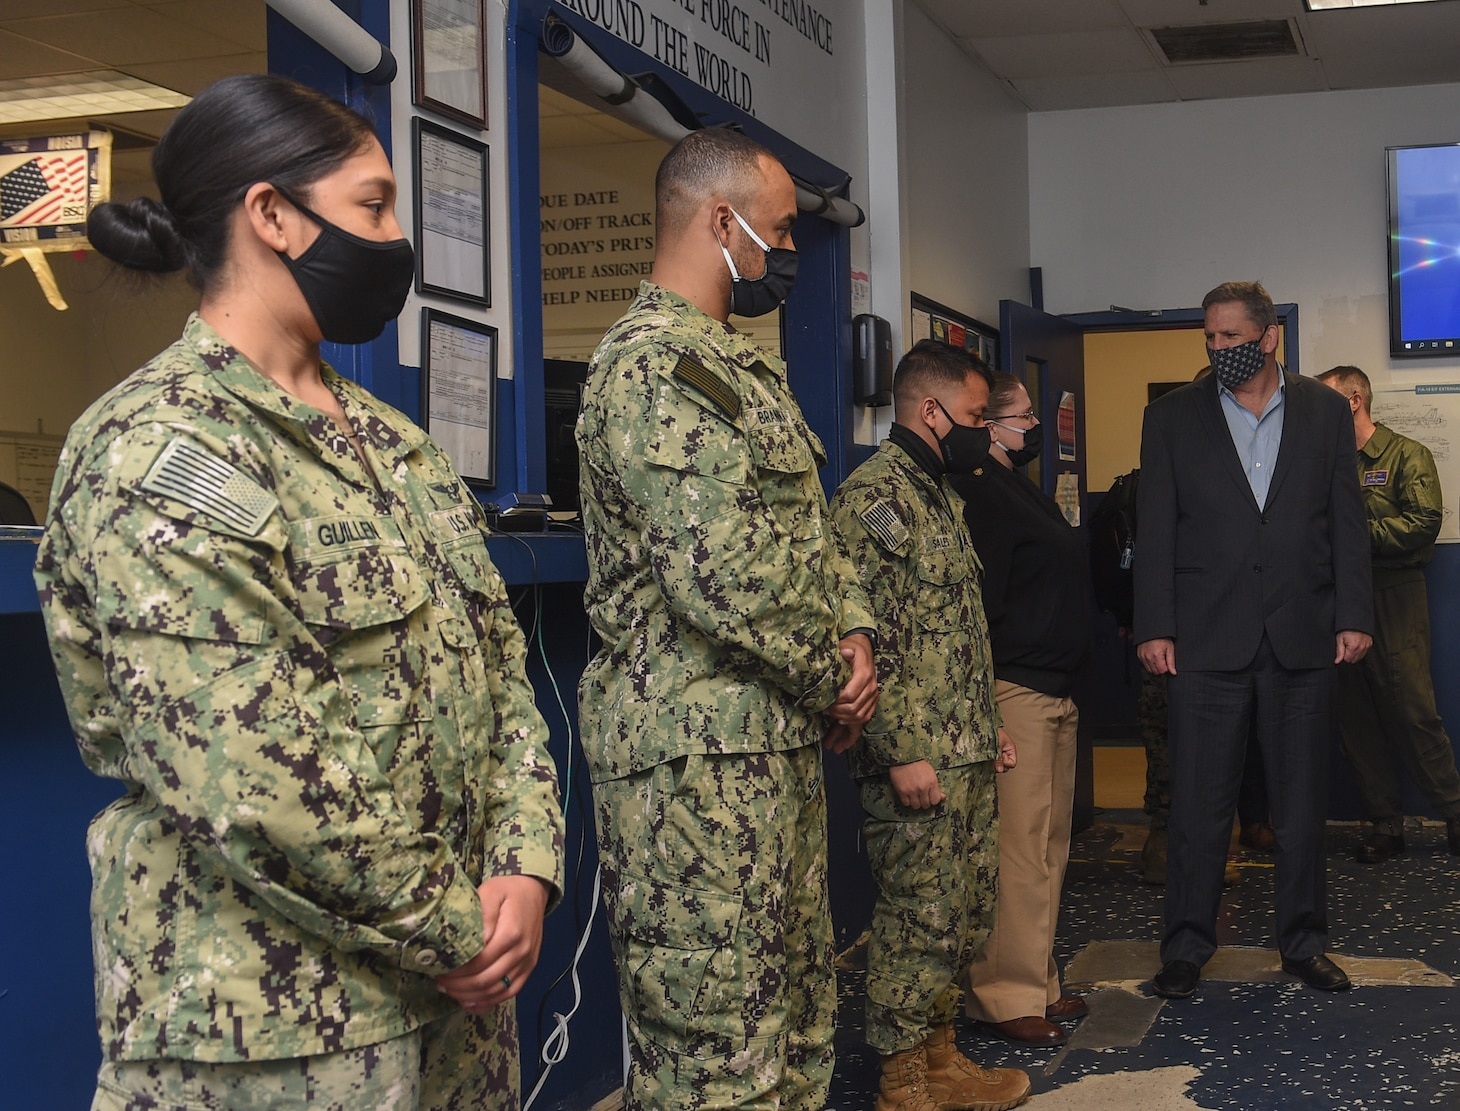 The Honorable James F. Geurts, currently performing the duties of Under Secretary of the Navy, meets with Sailors of the maintenance department of Strike Fighter Squadron (VFA) 106.